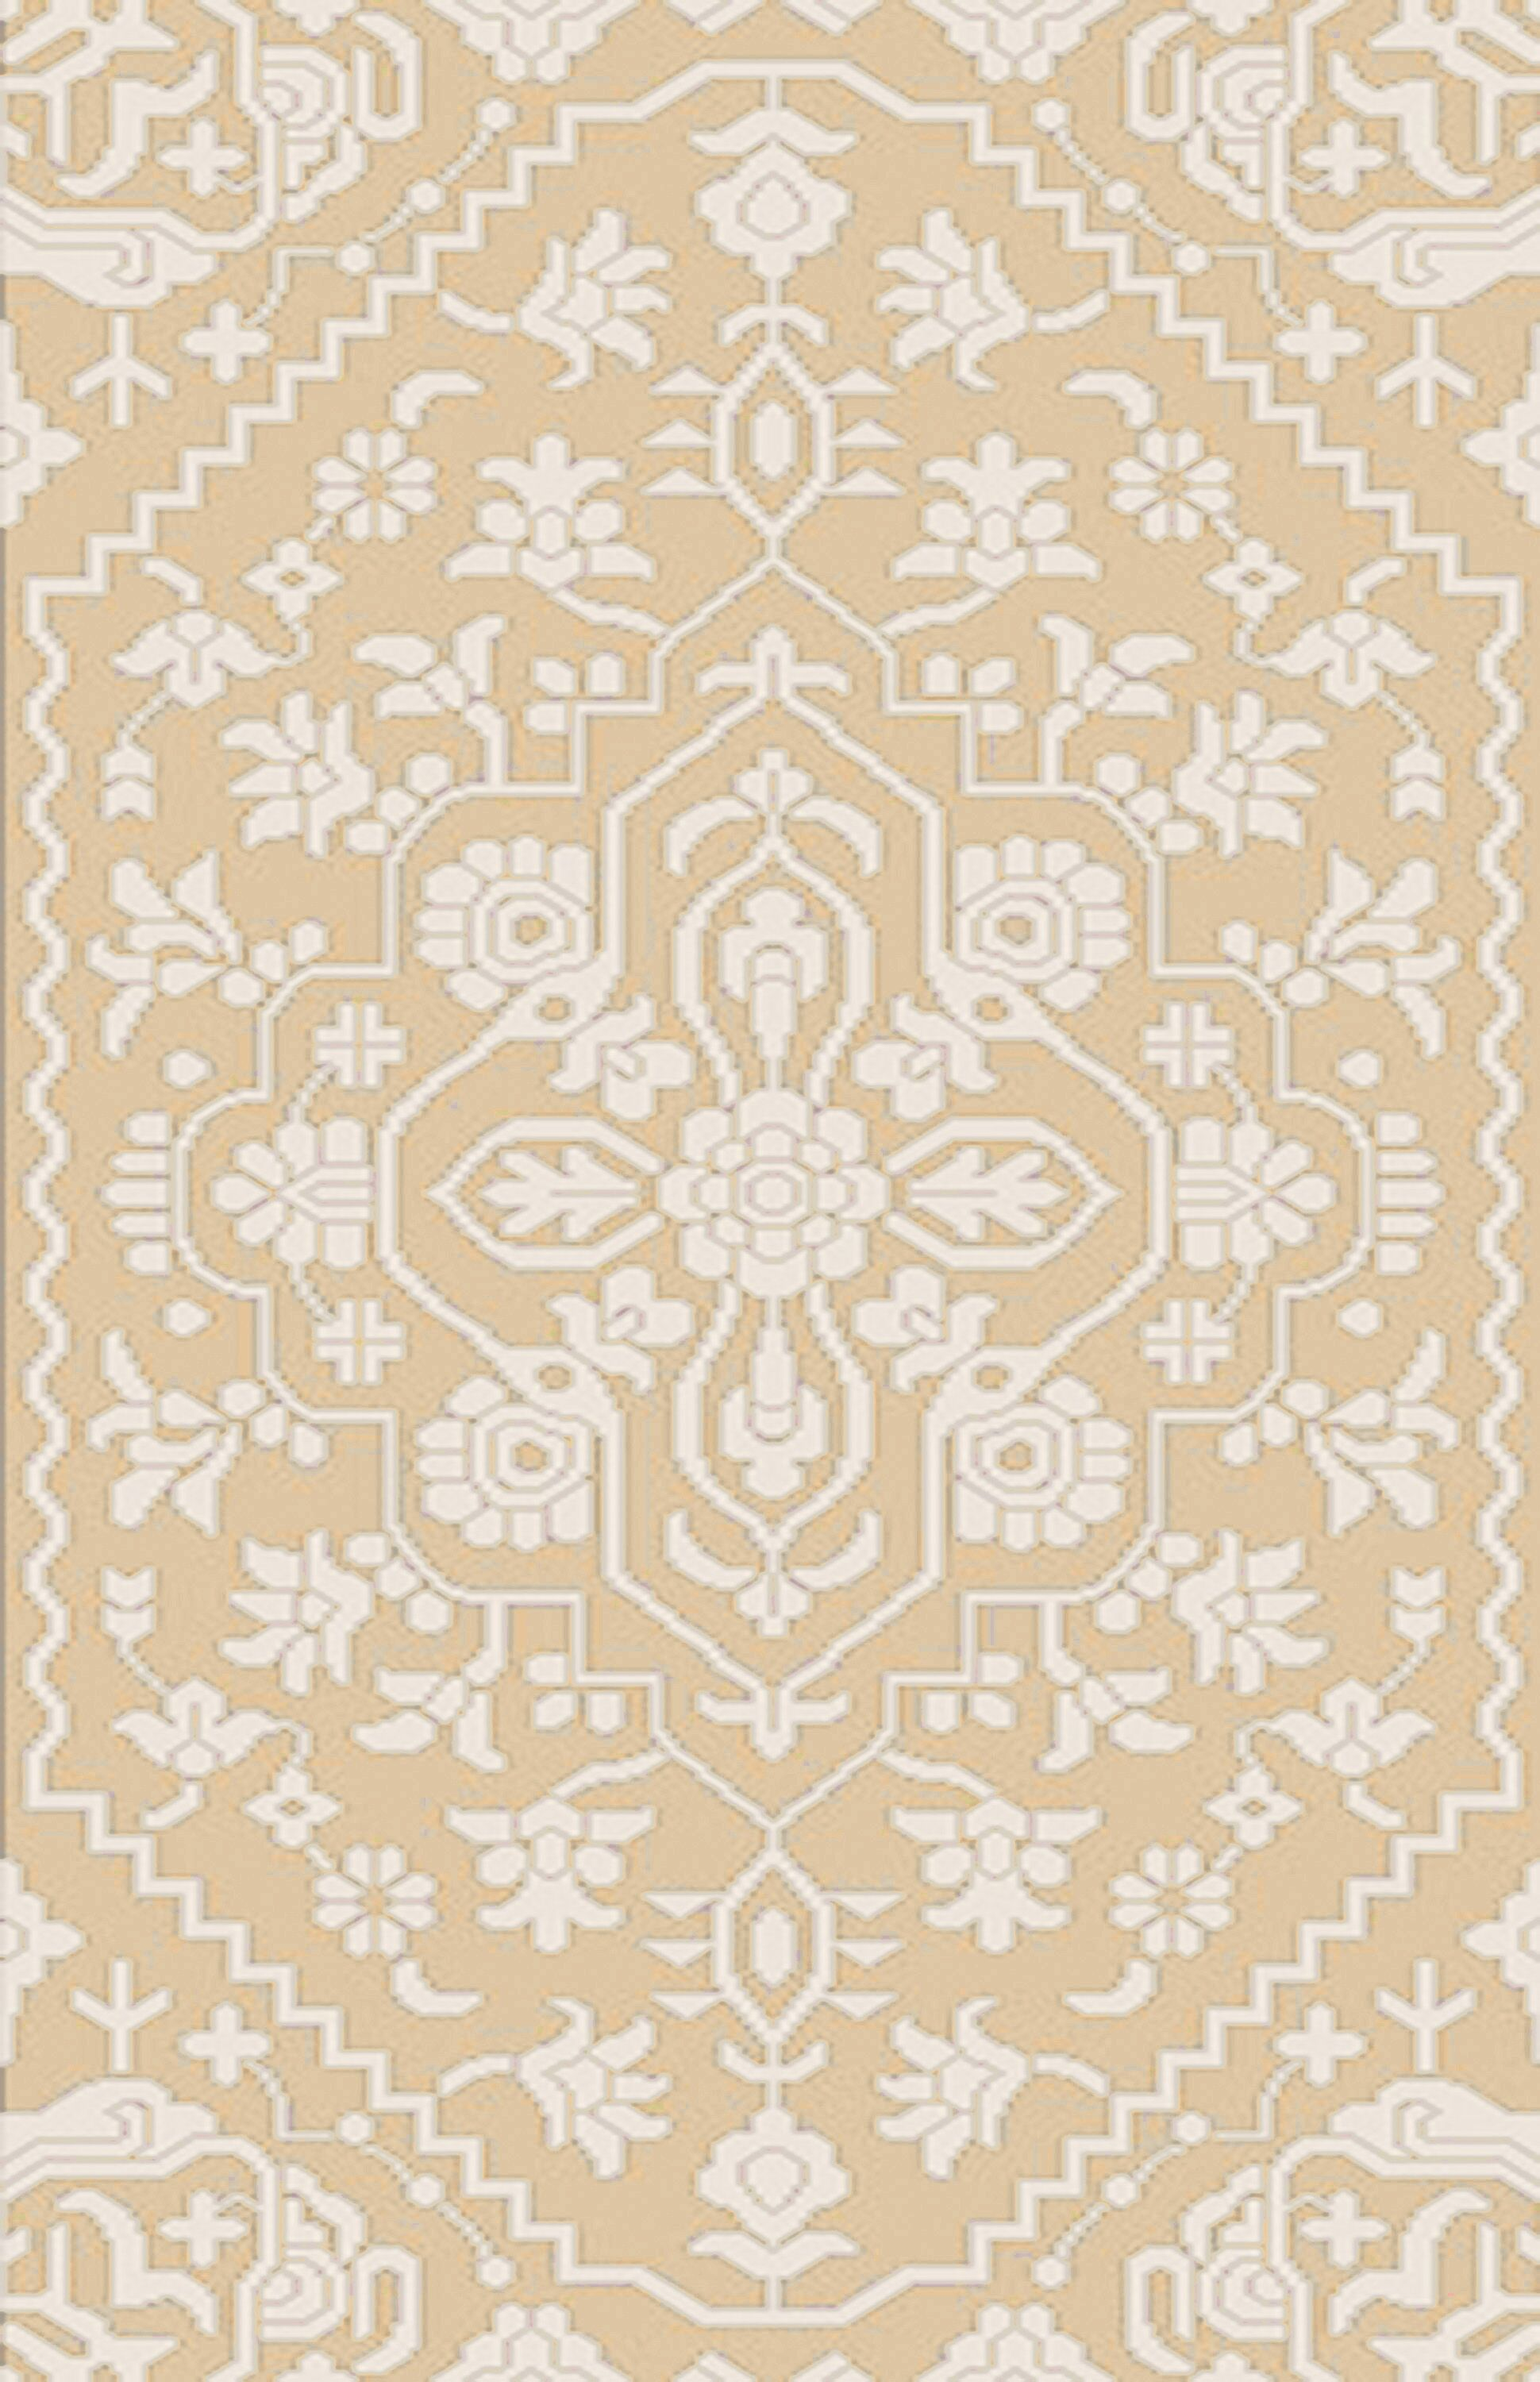 L'Ermitage Hand-Knotted Beige Area Rug Rug Size: Rectangle 9' x 12'